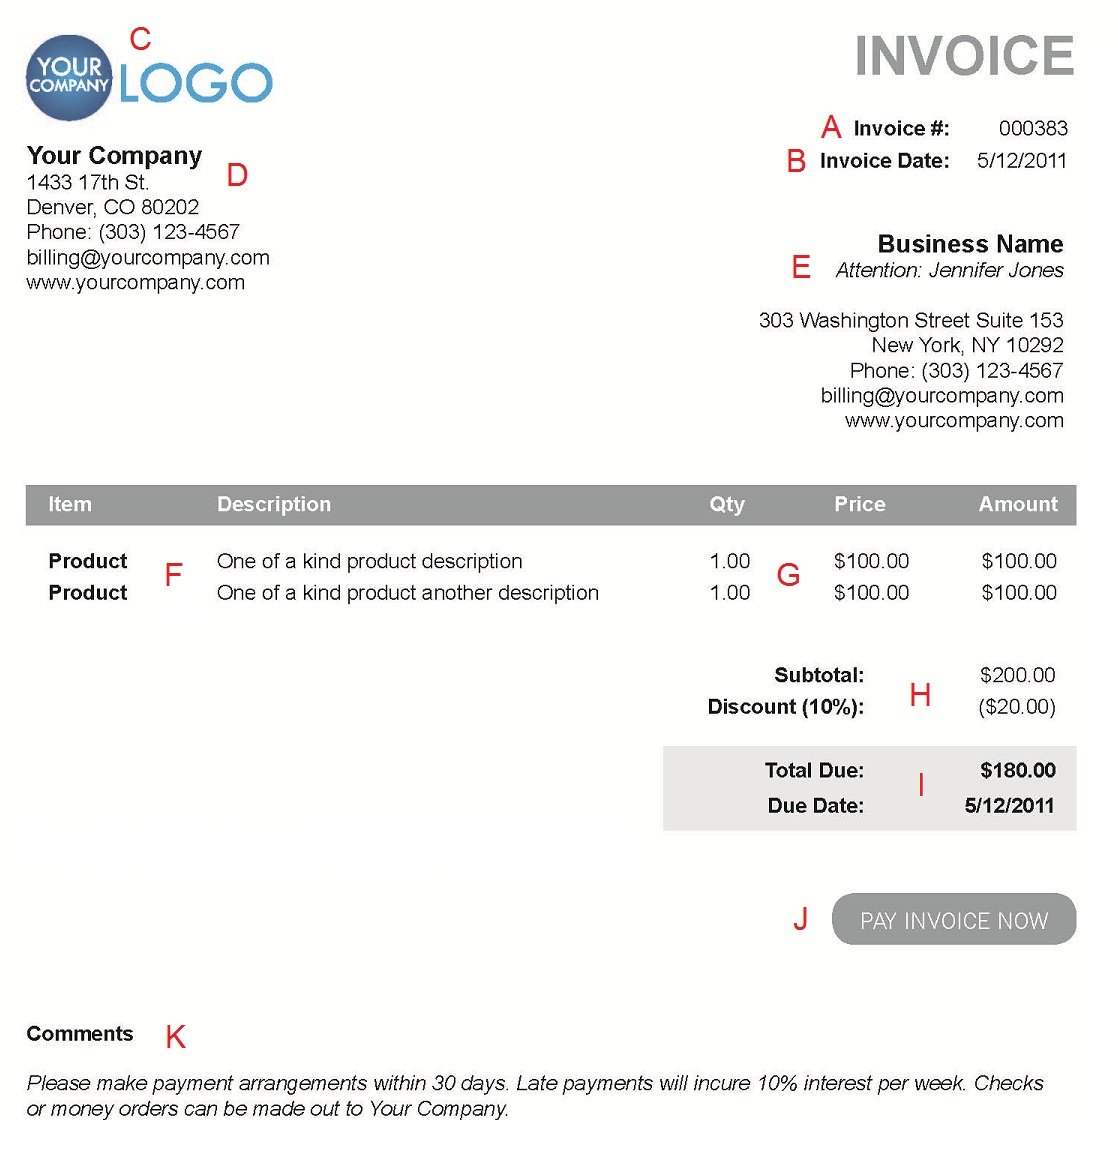 Ultrablogus  Wonderful The  Different Sections Of An Electronic Payment Invoice With Great A  With Divine Post Office Receipt Tracking Number Also Free Printable Receipt Templates In Addition Dock Receipt Template And Template For Receipts As Well As Lic Online Receipt Additionally Receipt Generator Free From Paysimplecom With Ultrablogus  Great The  Different Sections Of An Electronic Payment Invoice With Divine A  And Wonderful Post Office Receipt Tracking Number Also Free Printable Receipt Templates In Addition Dock Receipt Template From Paysimplecom